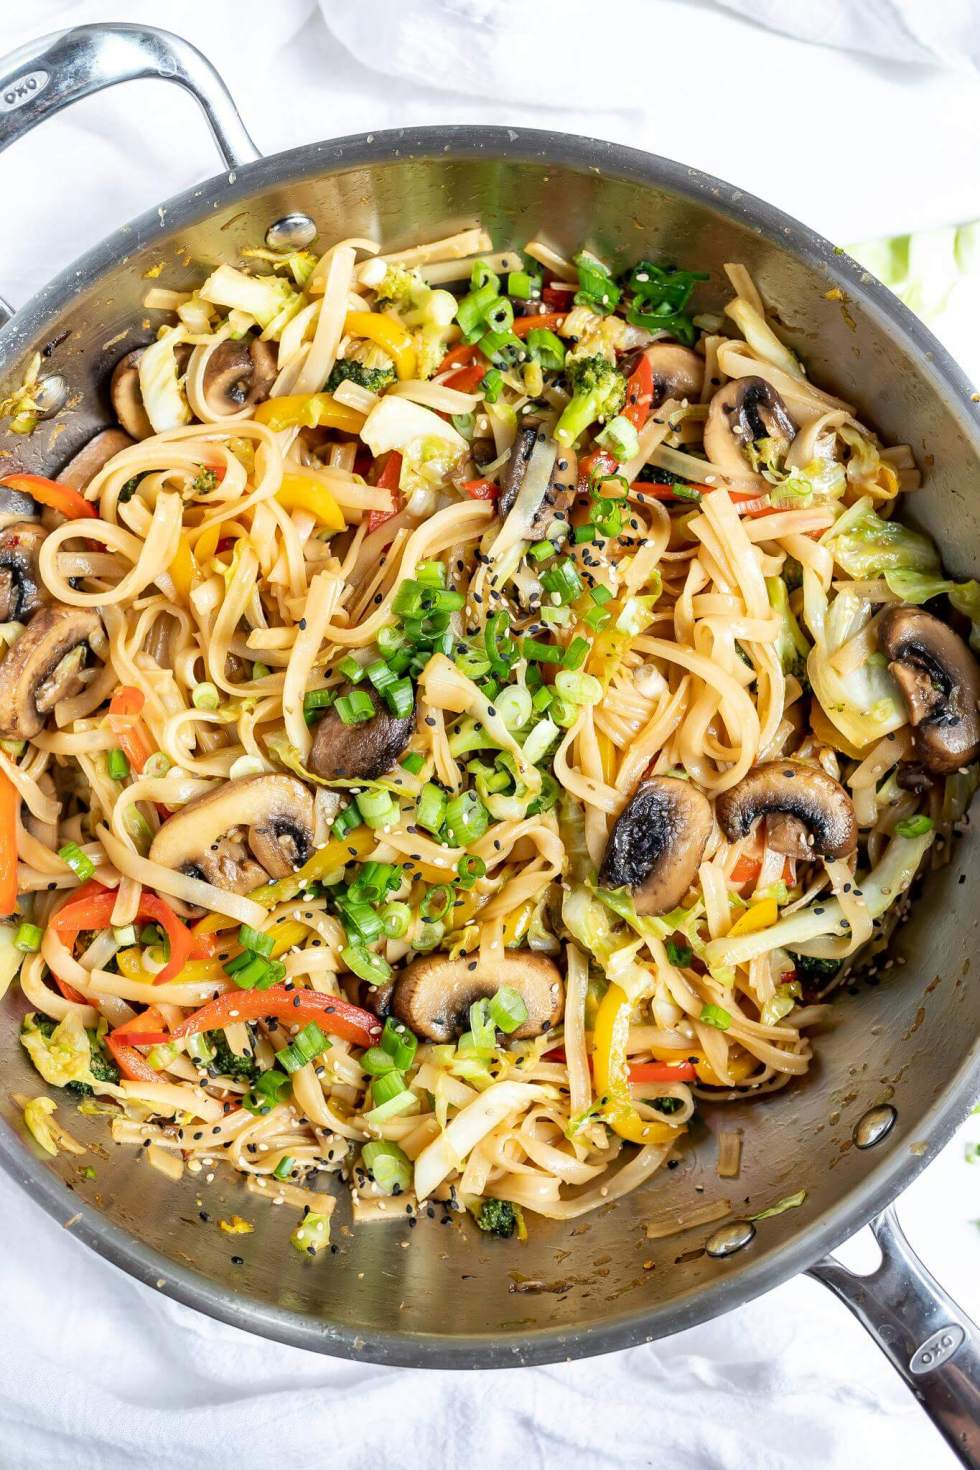 stir fry vegetables and chinese noodles in large silver wok